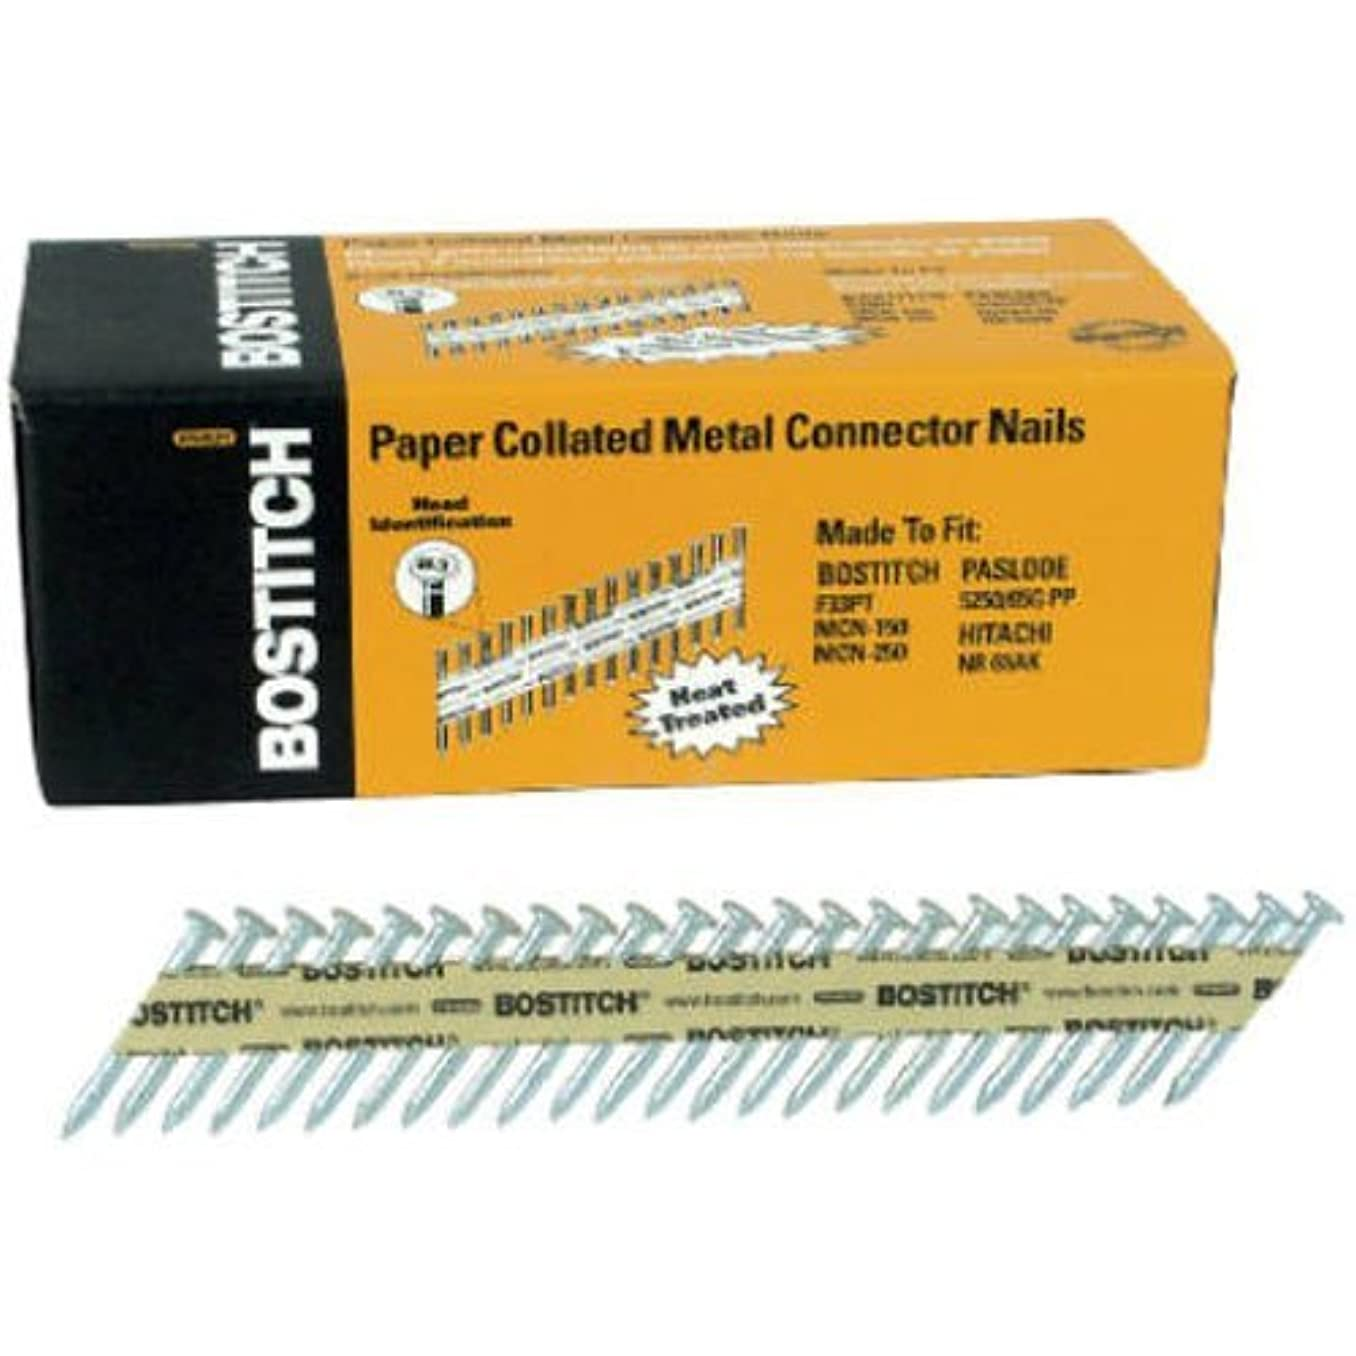 BOSTITCH PT-MC13115GAL-1M 1 1/2-Inch x .131 Paper Tape Collated Galvanized Metal Connector Nails, 1000-Qty. - PT-MC13115G-1M